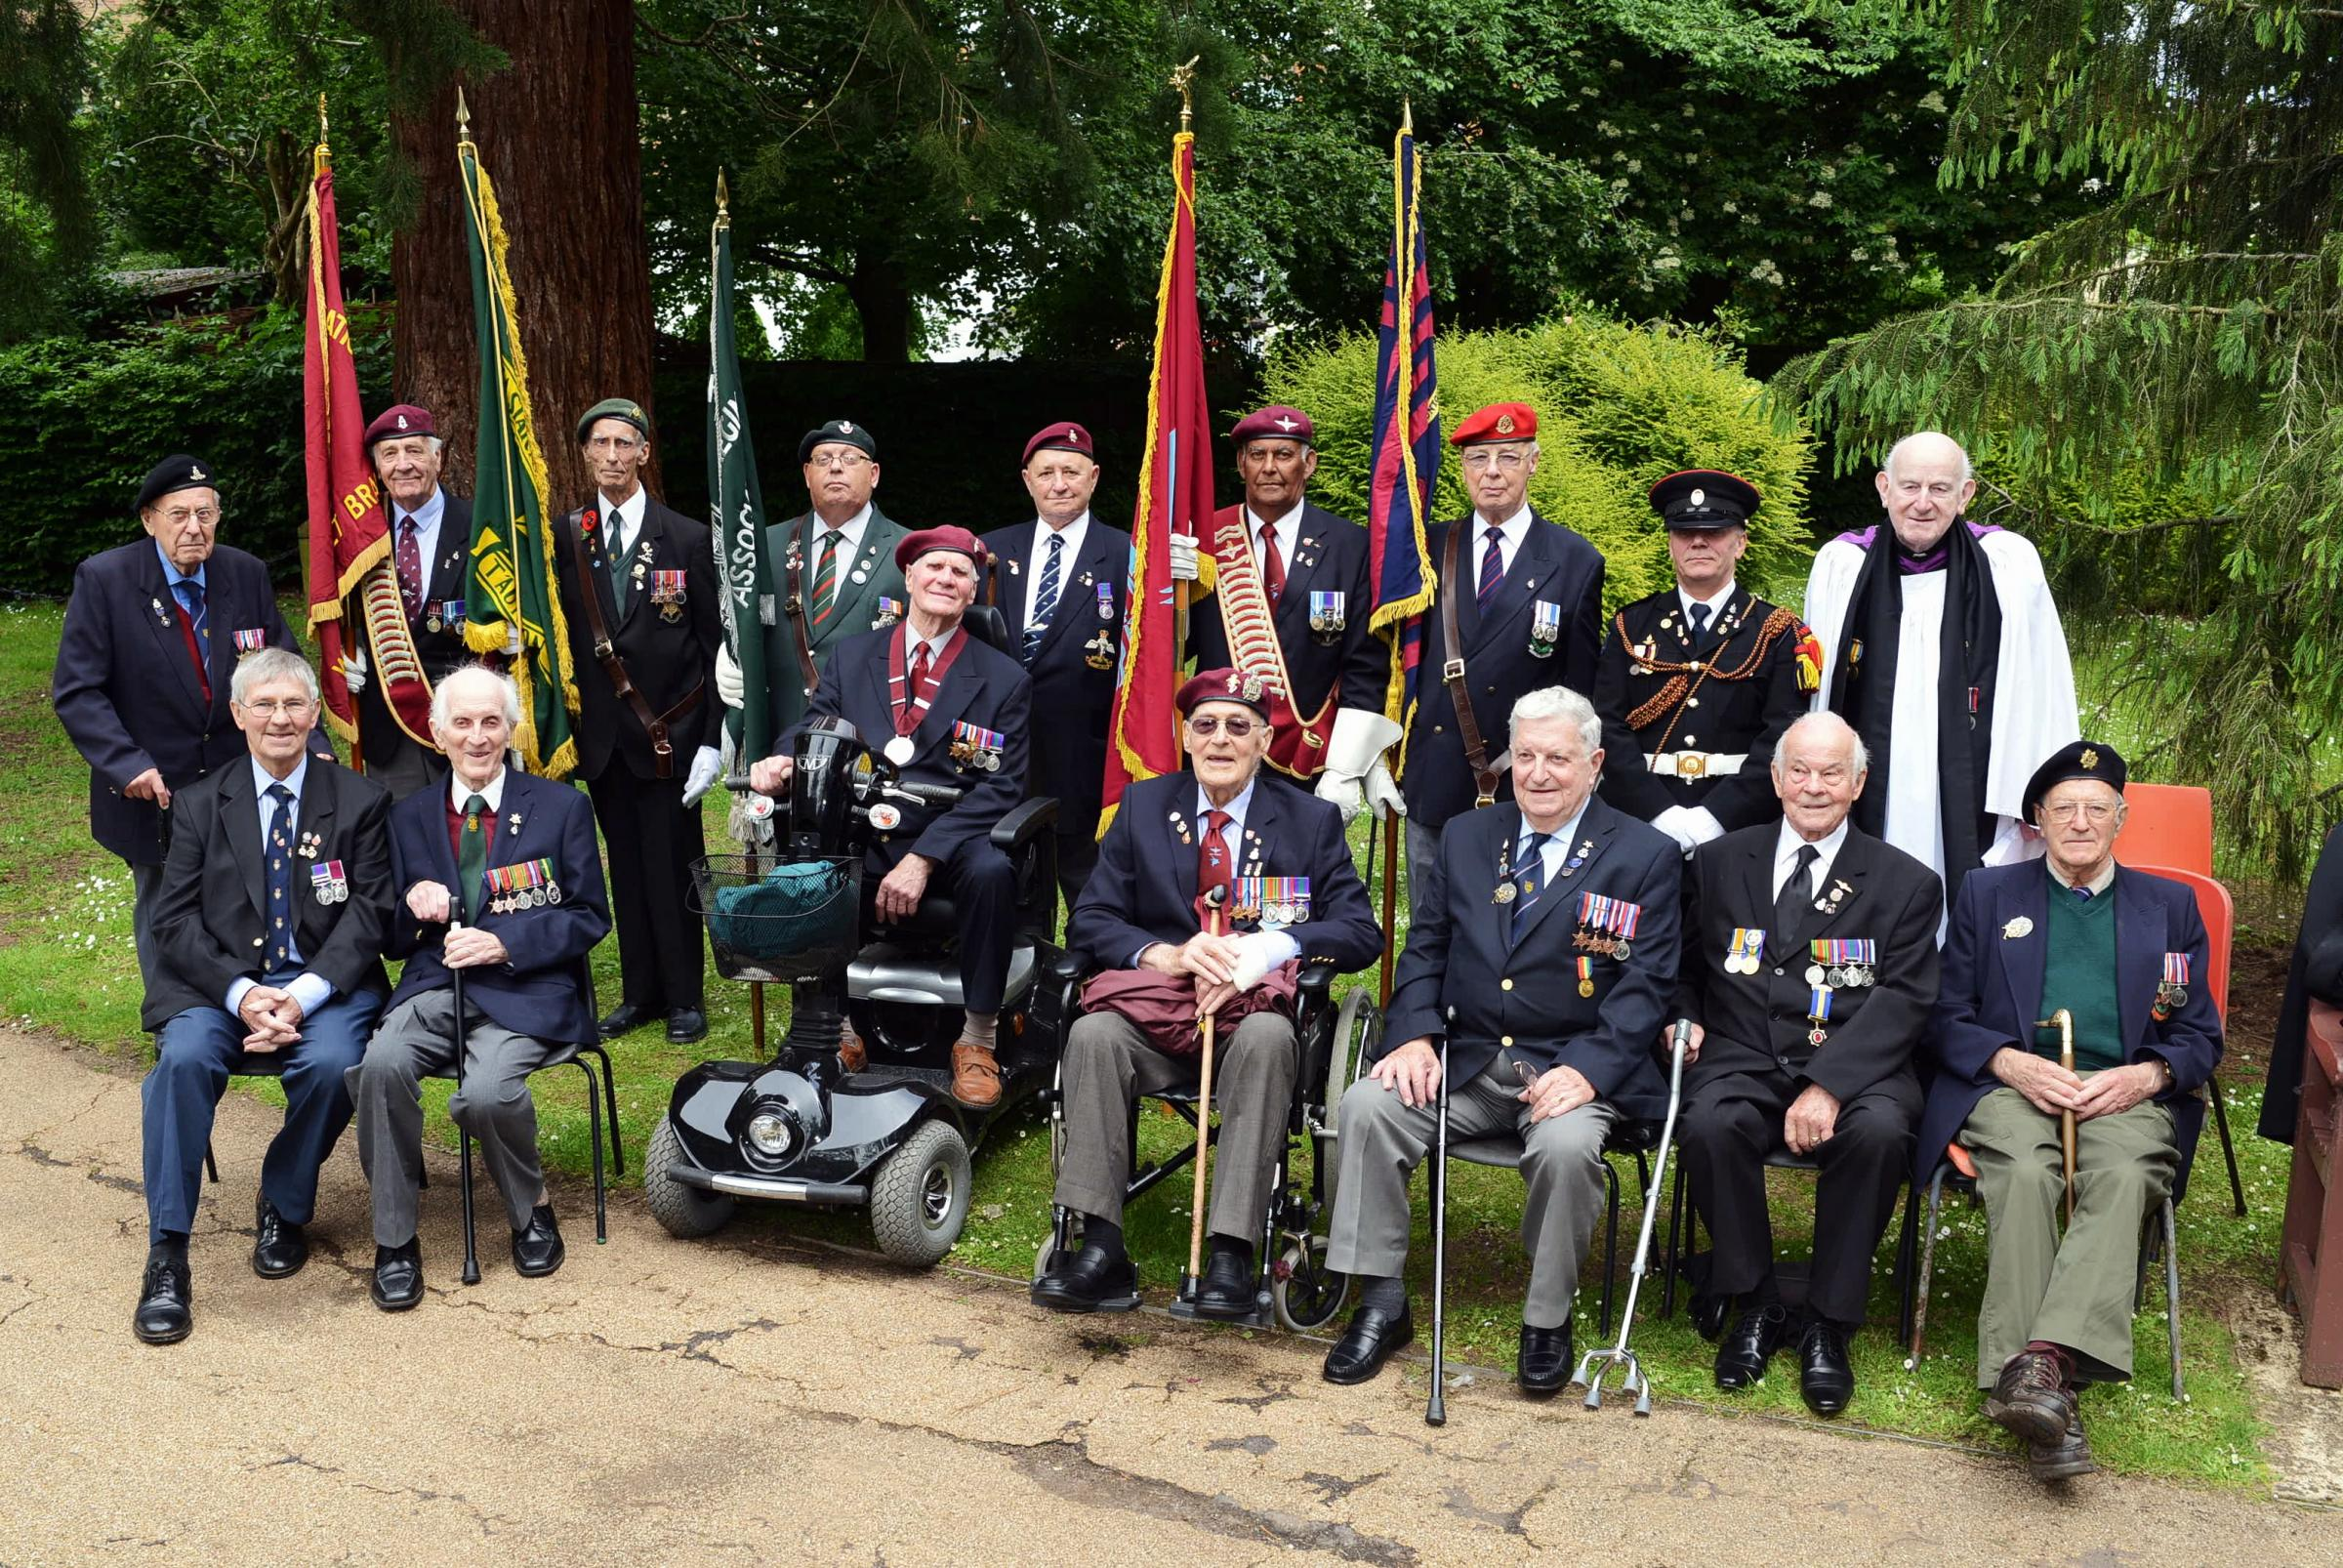 Taunton marks 70th anniversary of D-Day